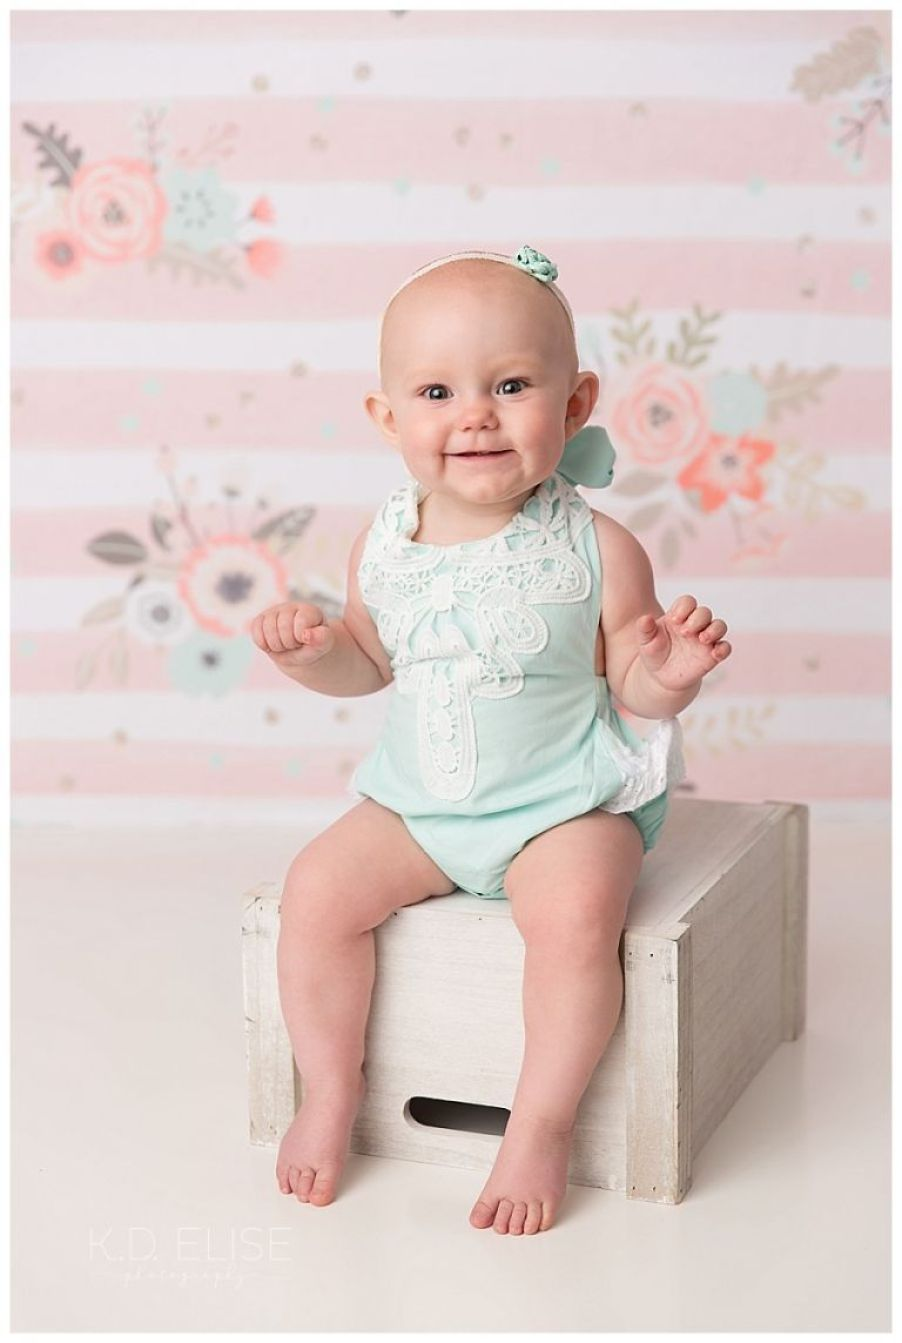 Baby girl sitting on a crate in front of a pink and white stripped backdrop.